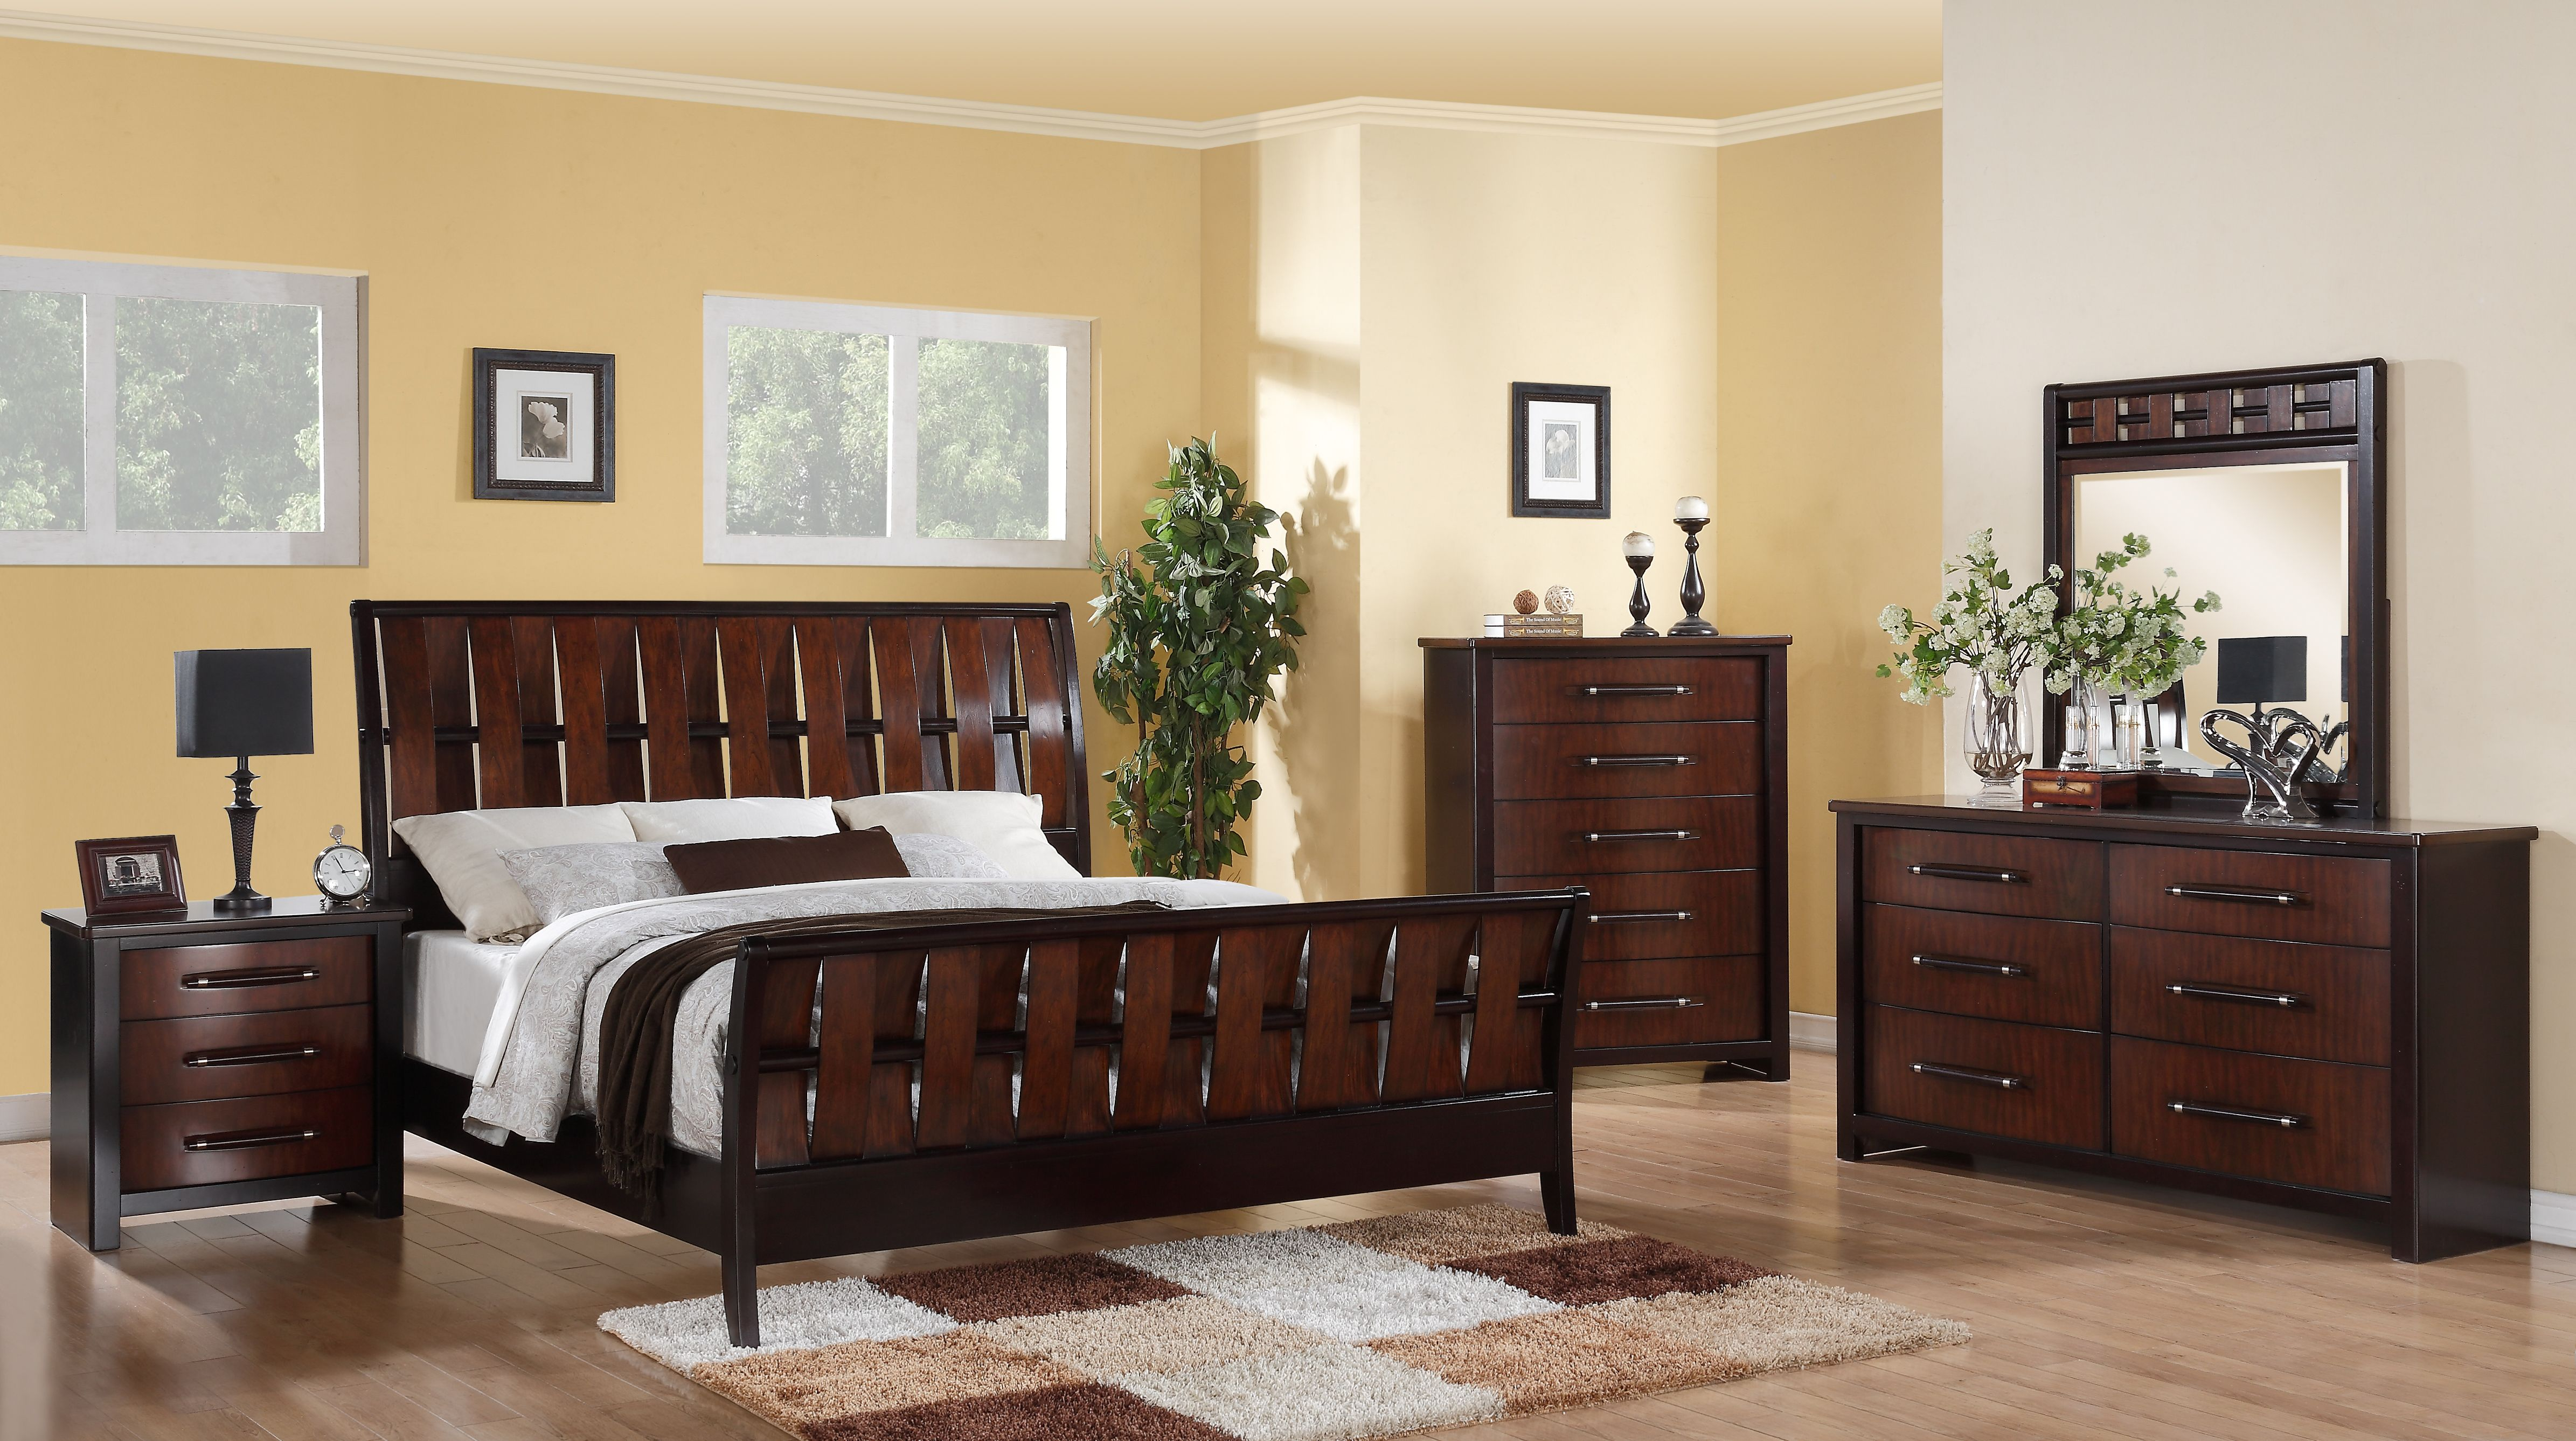 CustomerFeedback What do you think of this bedroom set